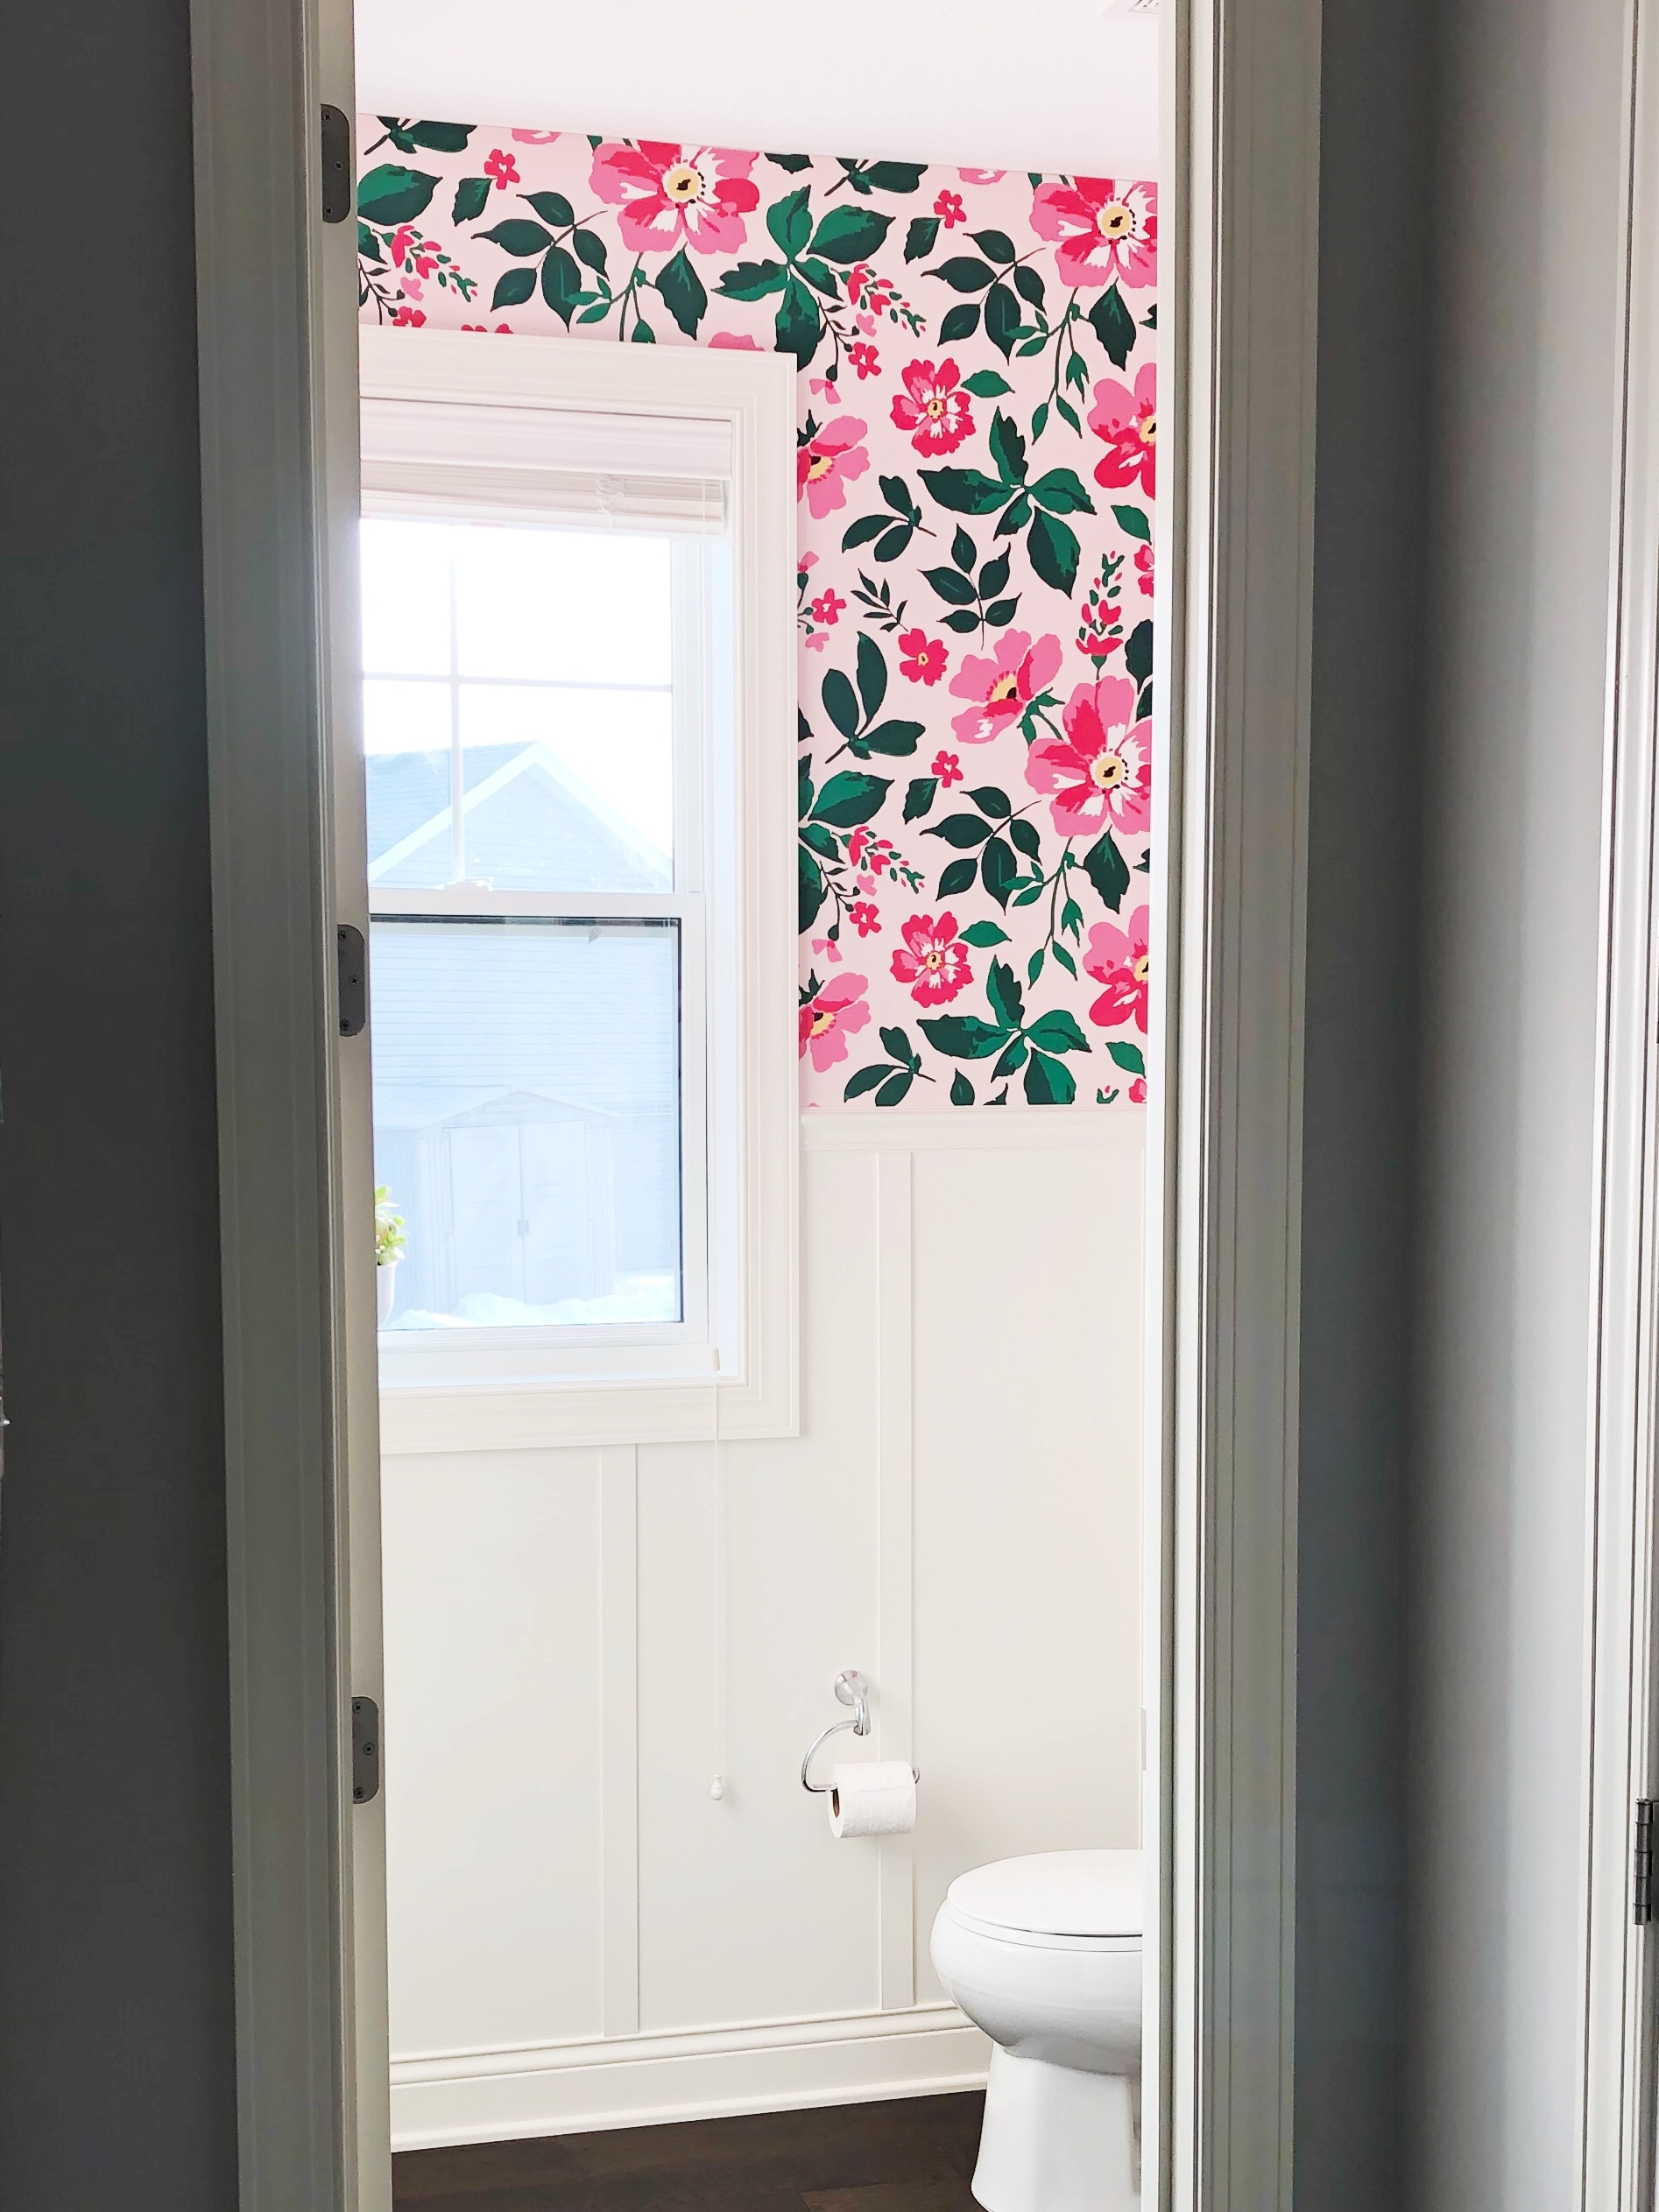 Bathroom makeover with custom wallpaper and DIY Board and Batten. Pink and Green Powder Room.